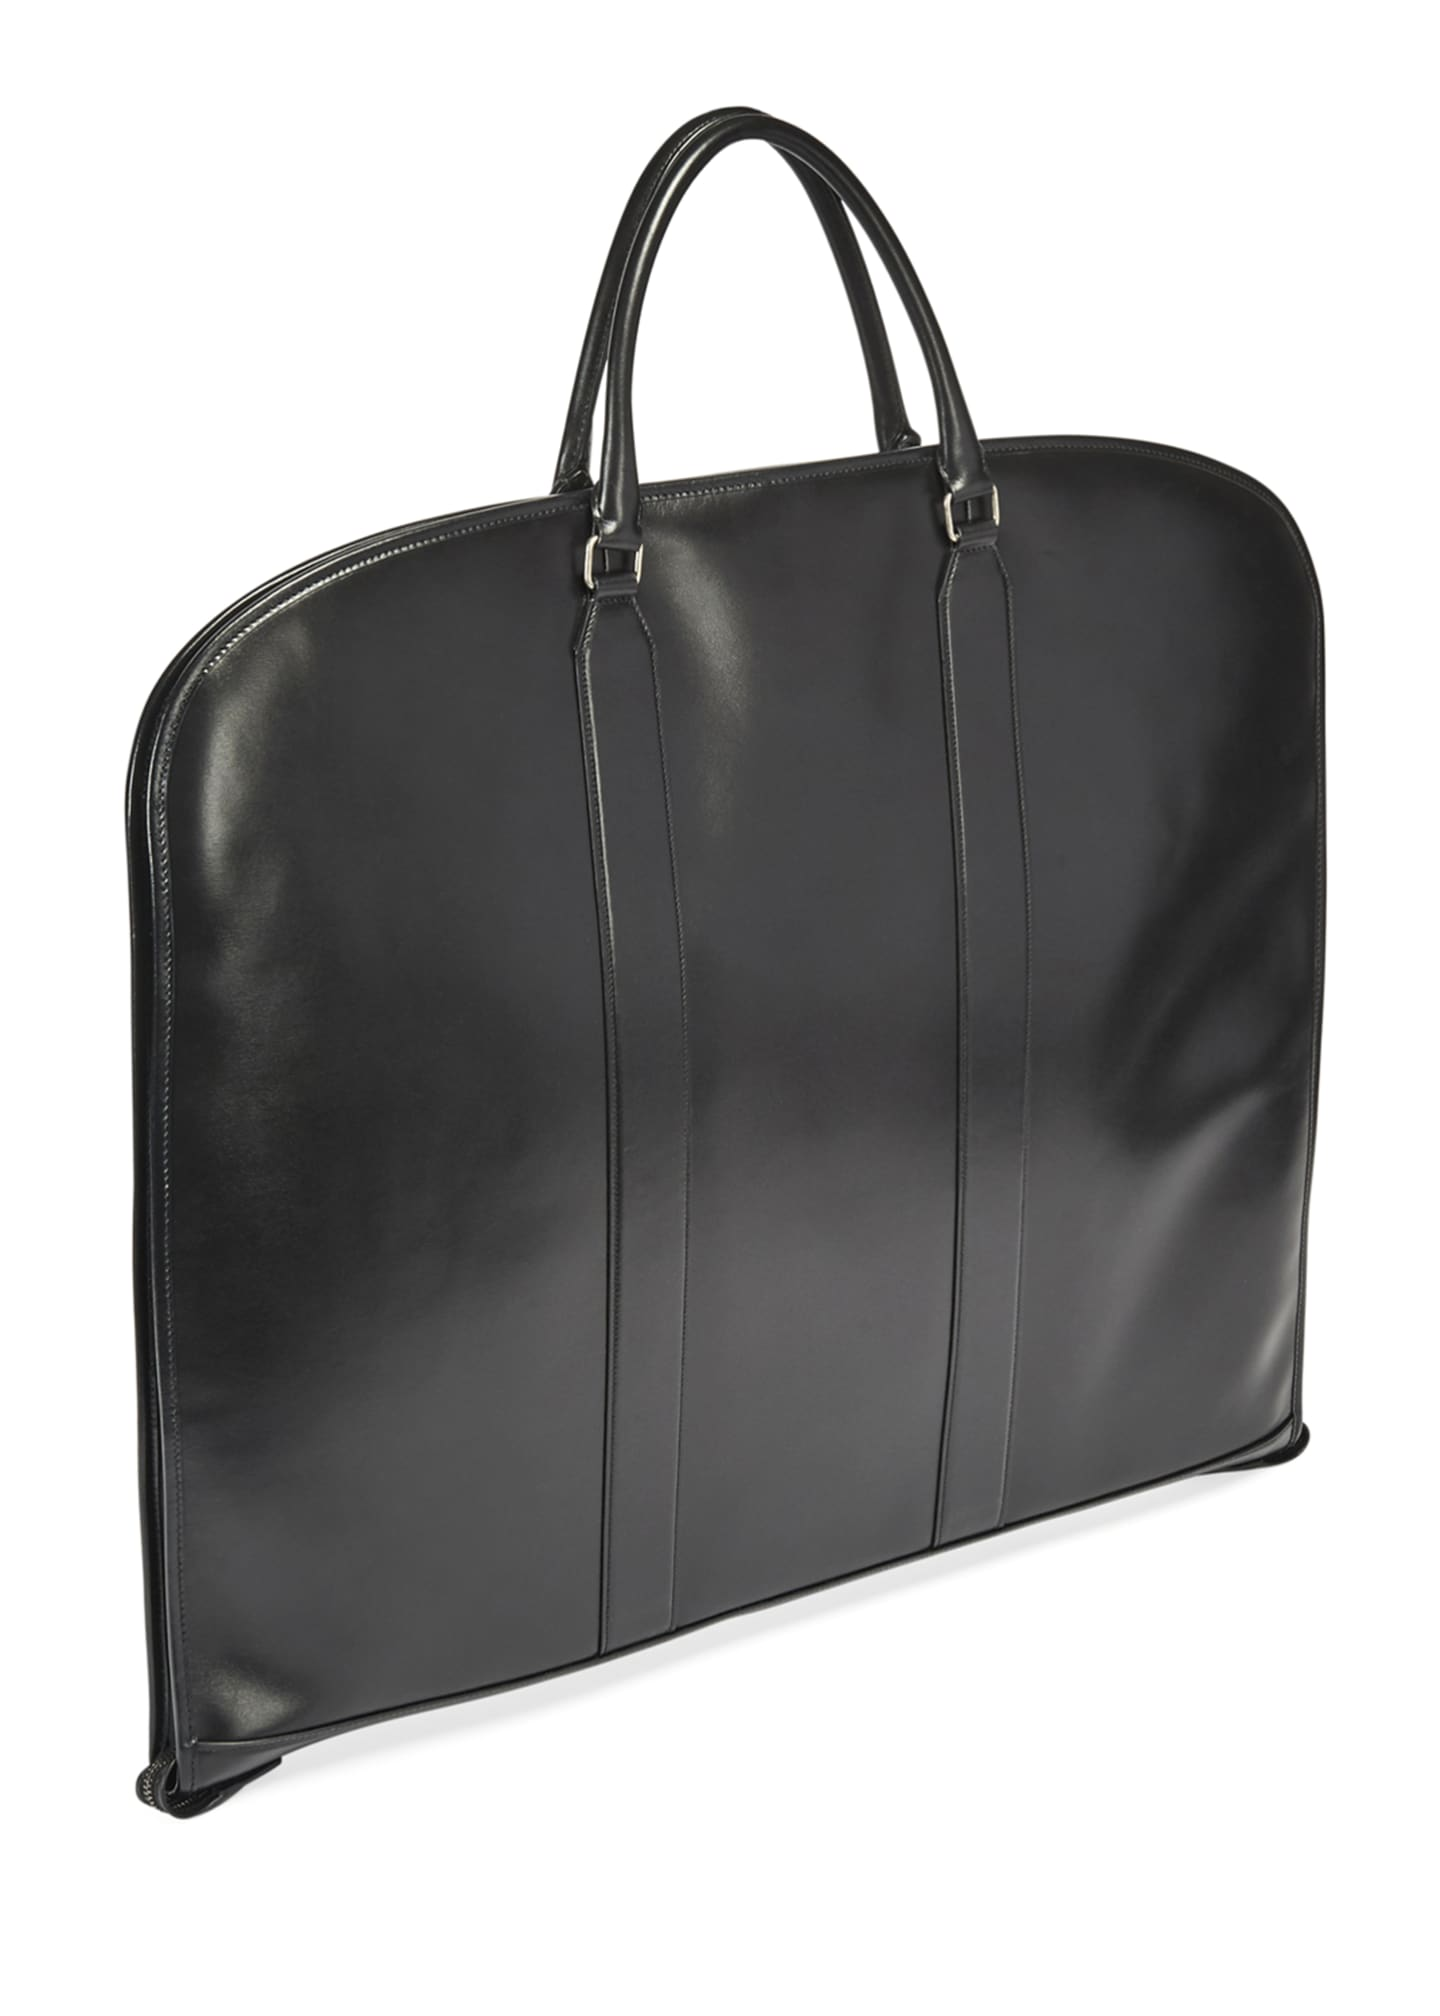 Image 2 of 3: Men's Leather Suit Garment Bag Luggage